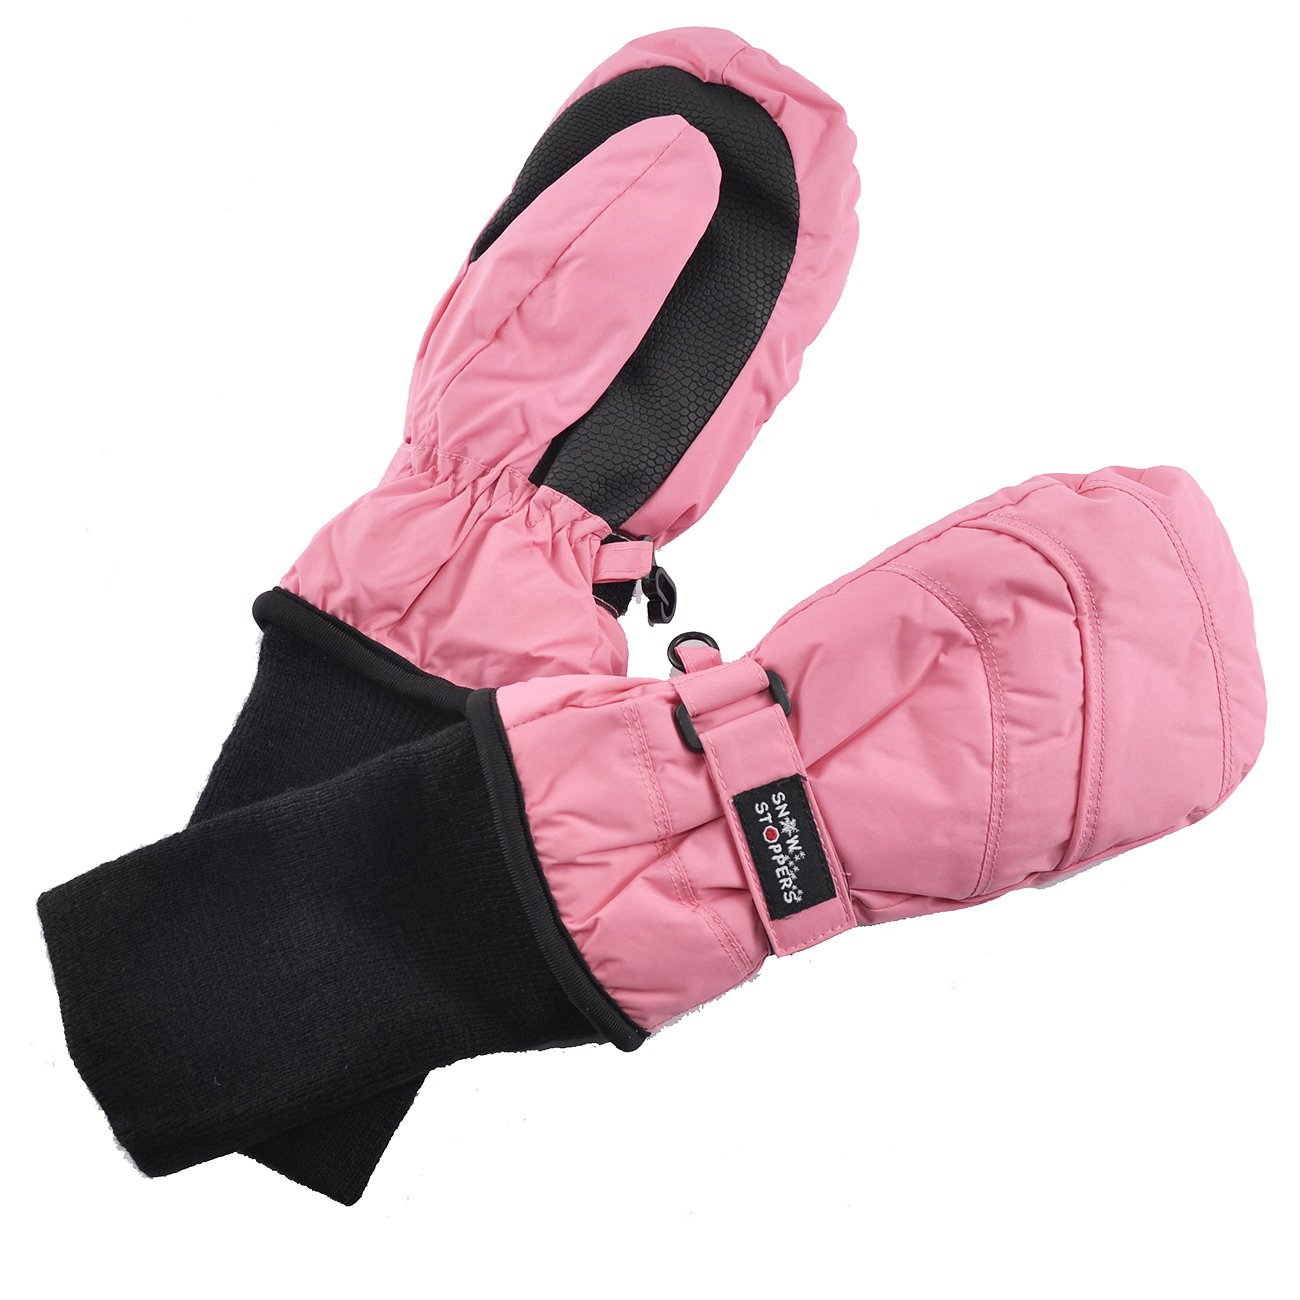 SnowStoppers Kid's Waterproof Stay On Winter Nylon Mittens Small / 1-3 Years Pink